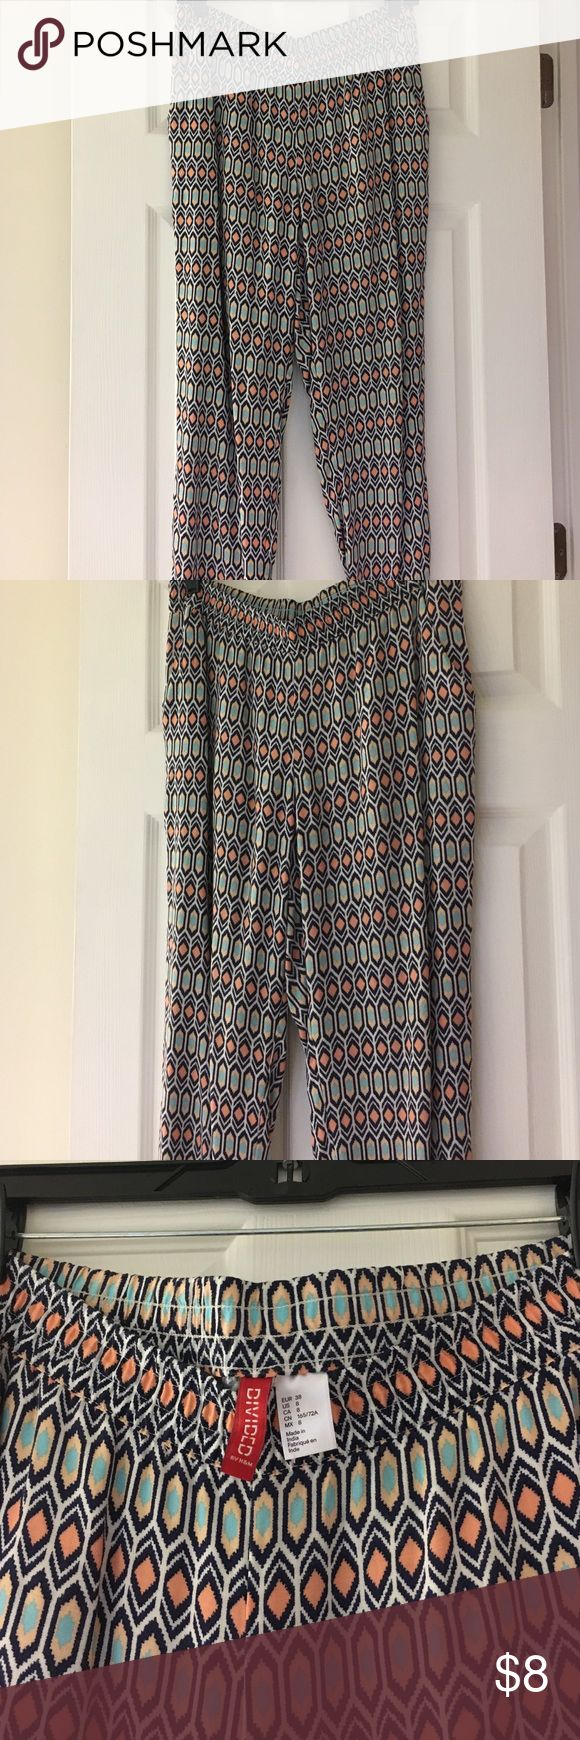 """H&M Aztec Print Soft Pant These H&M Printed Pants are great for spring/summer! They are tight around the ankle and kind of have a """"jogger"""" pant look. H&M Pants"""